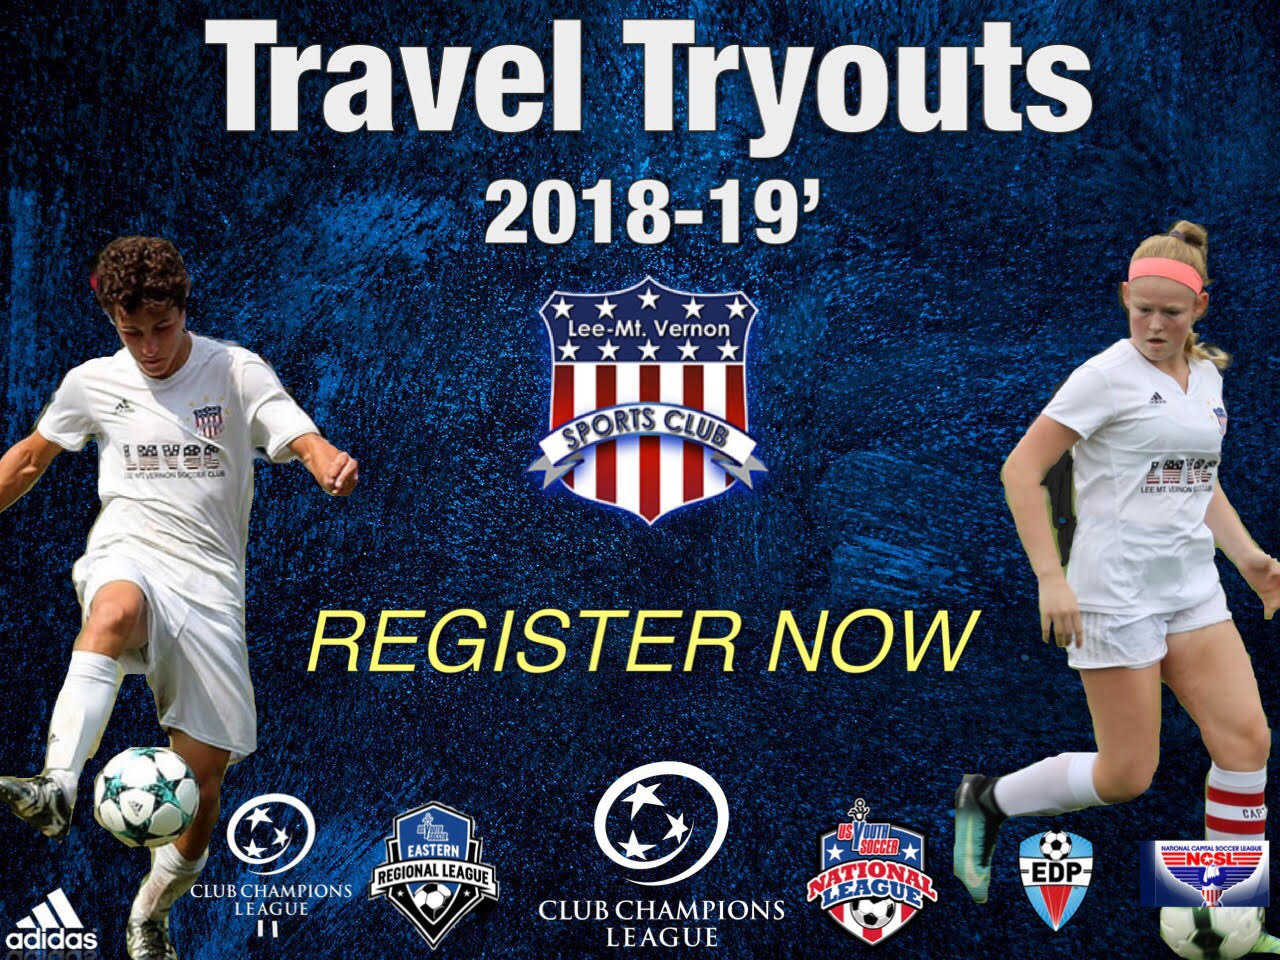 1b3d361a06 2018-19  TRAVEL TRYOUTS SCHEDULE ANNOUNCED! - Lee Mount Vernon ...